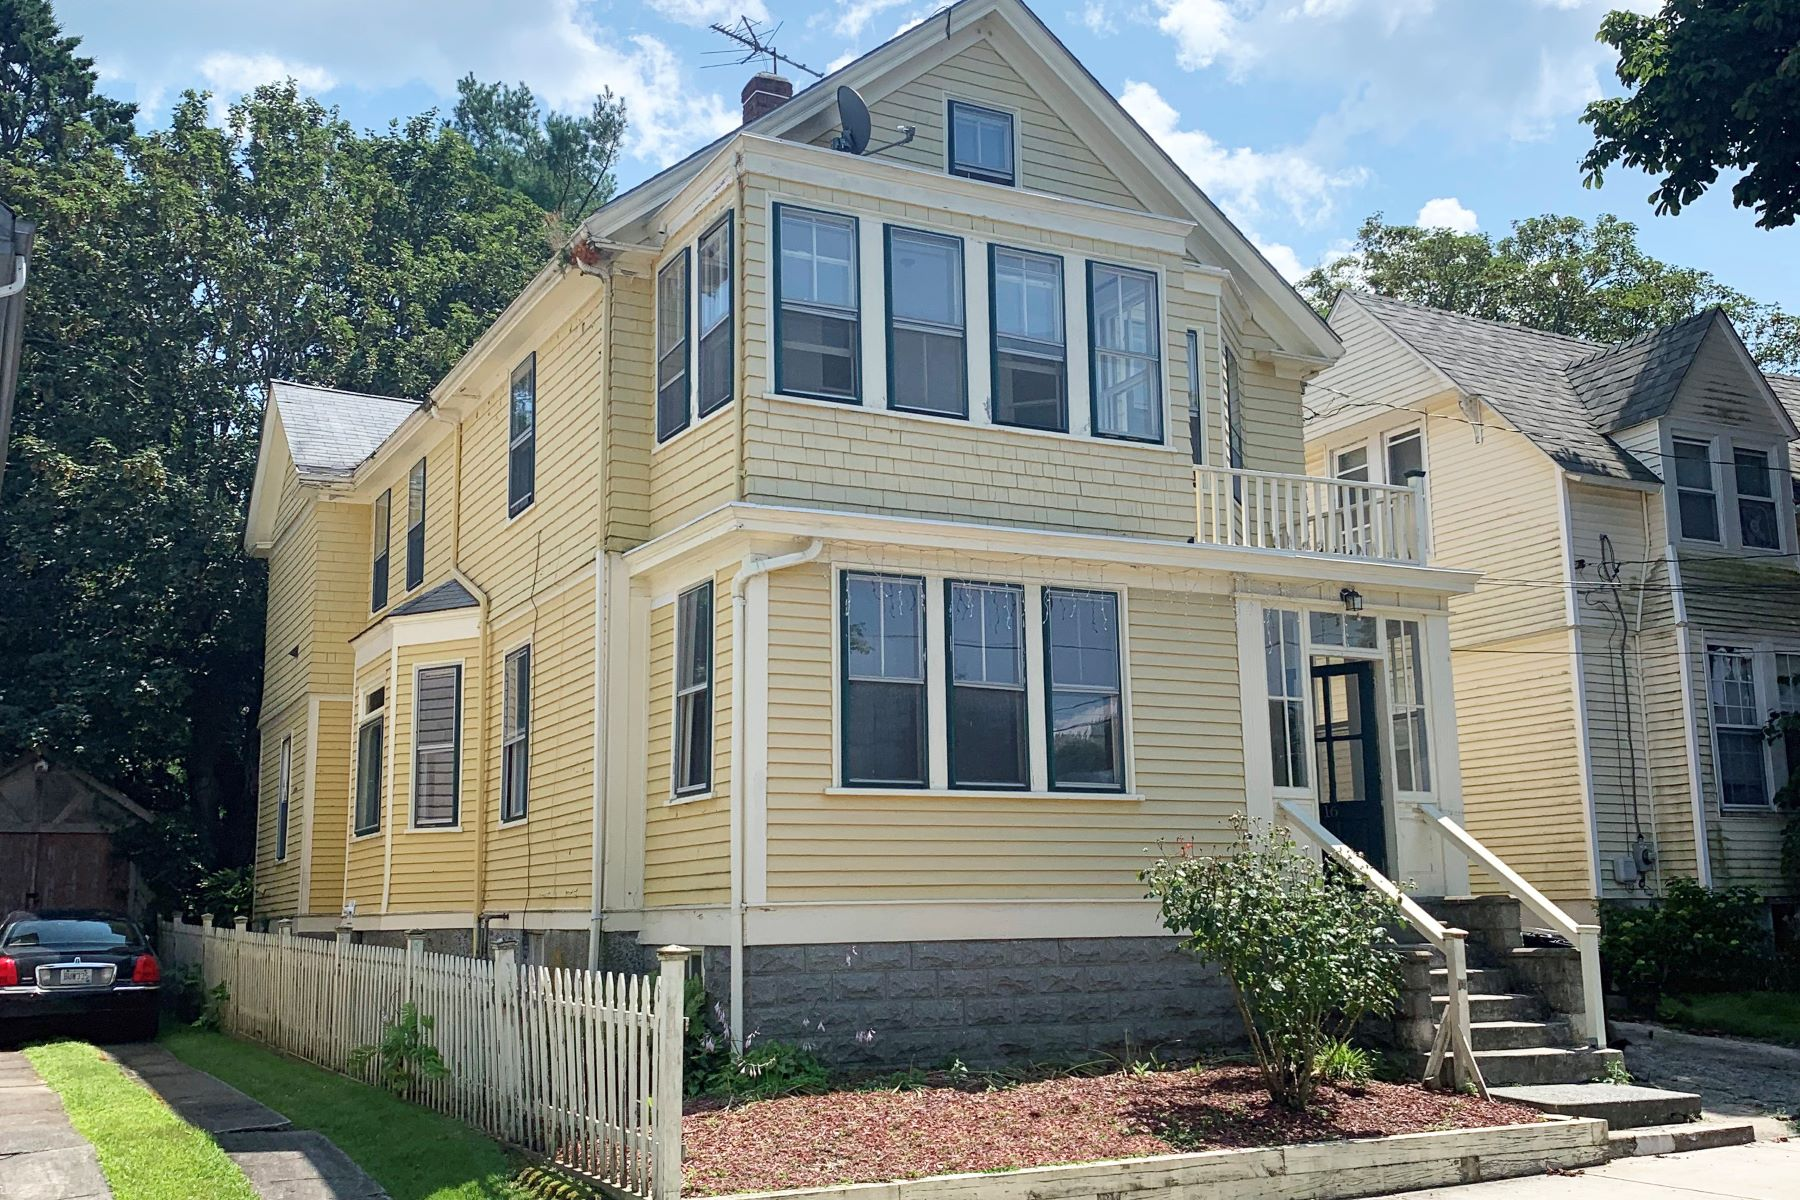 Multi-Family Homes for Sale at Fifth Ward Multi-Family 16 Vaughan Avenue Newport, Rhode Island 02840 United States